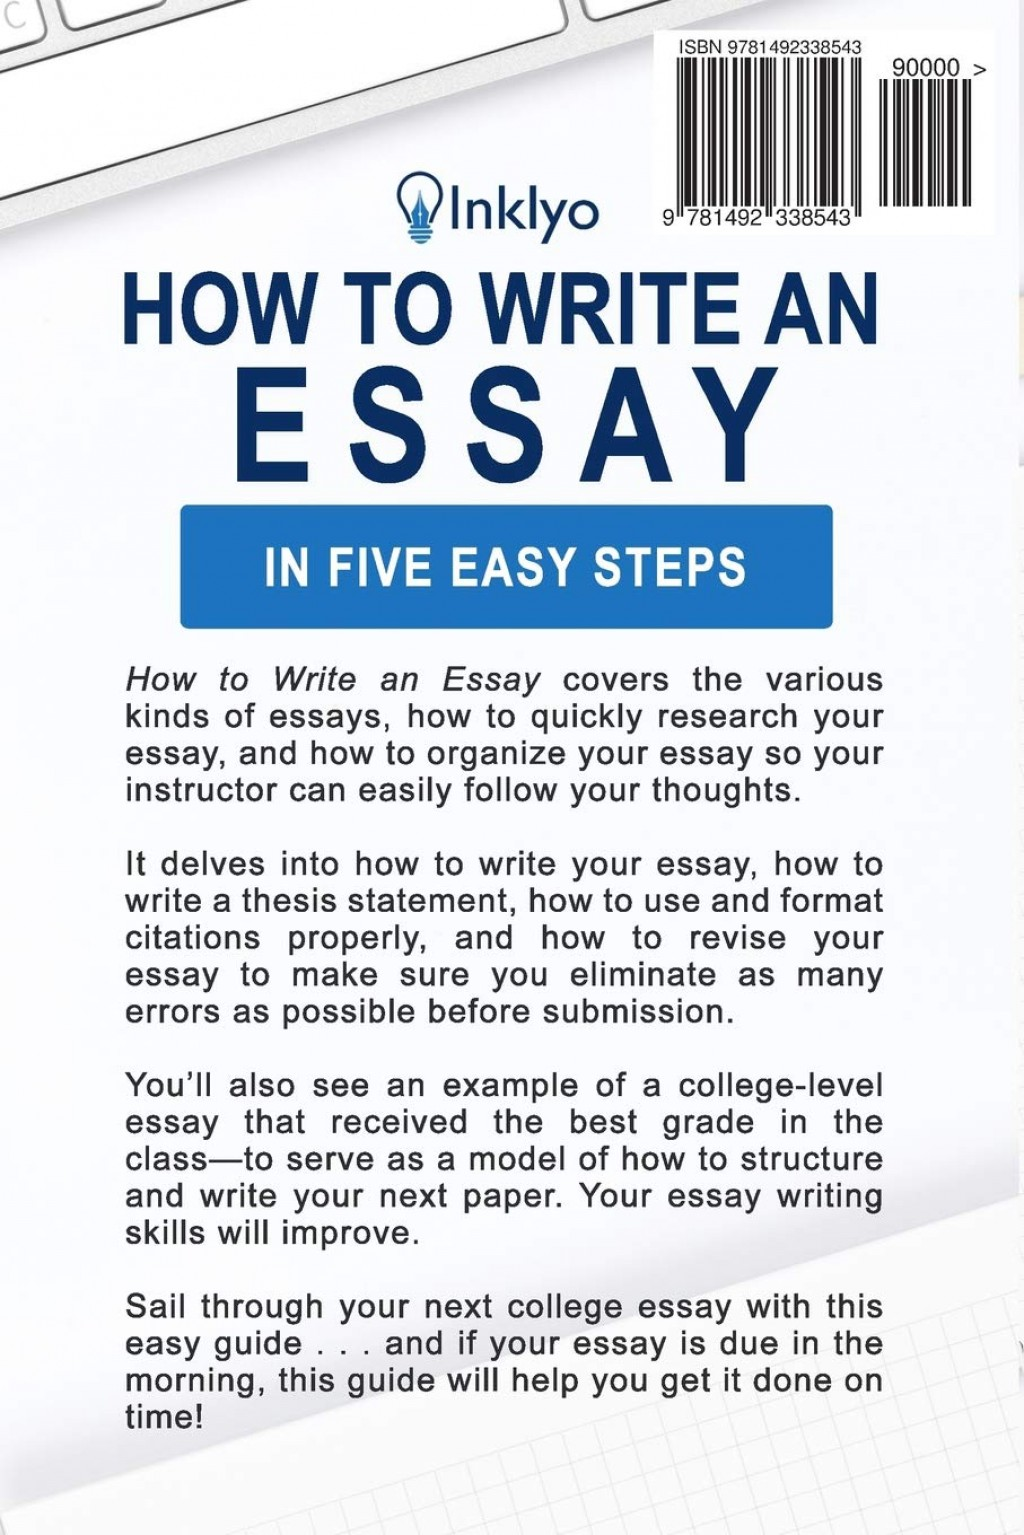 004 Essay Example How To Write And Unique An Conclusion University Level Outline For College Placement Test Large